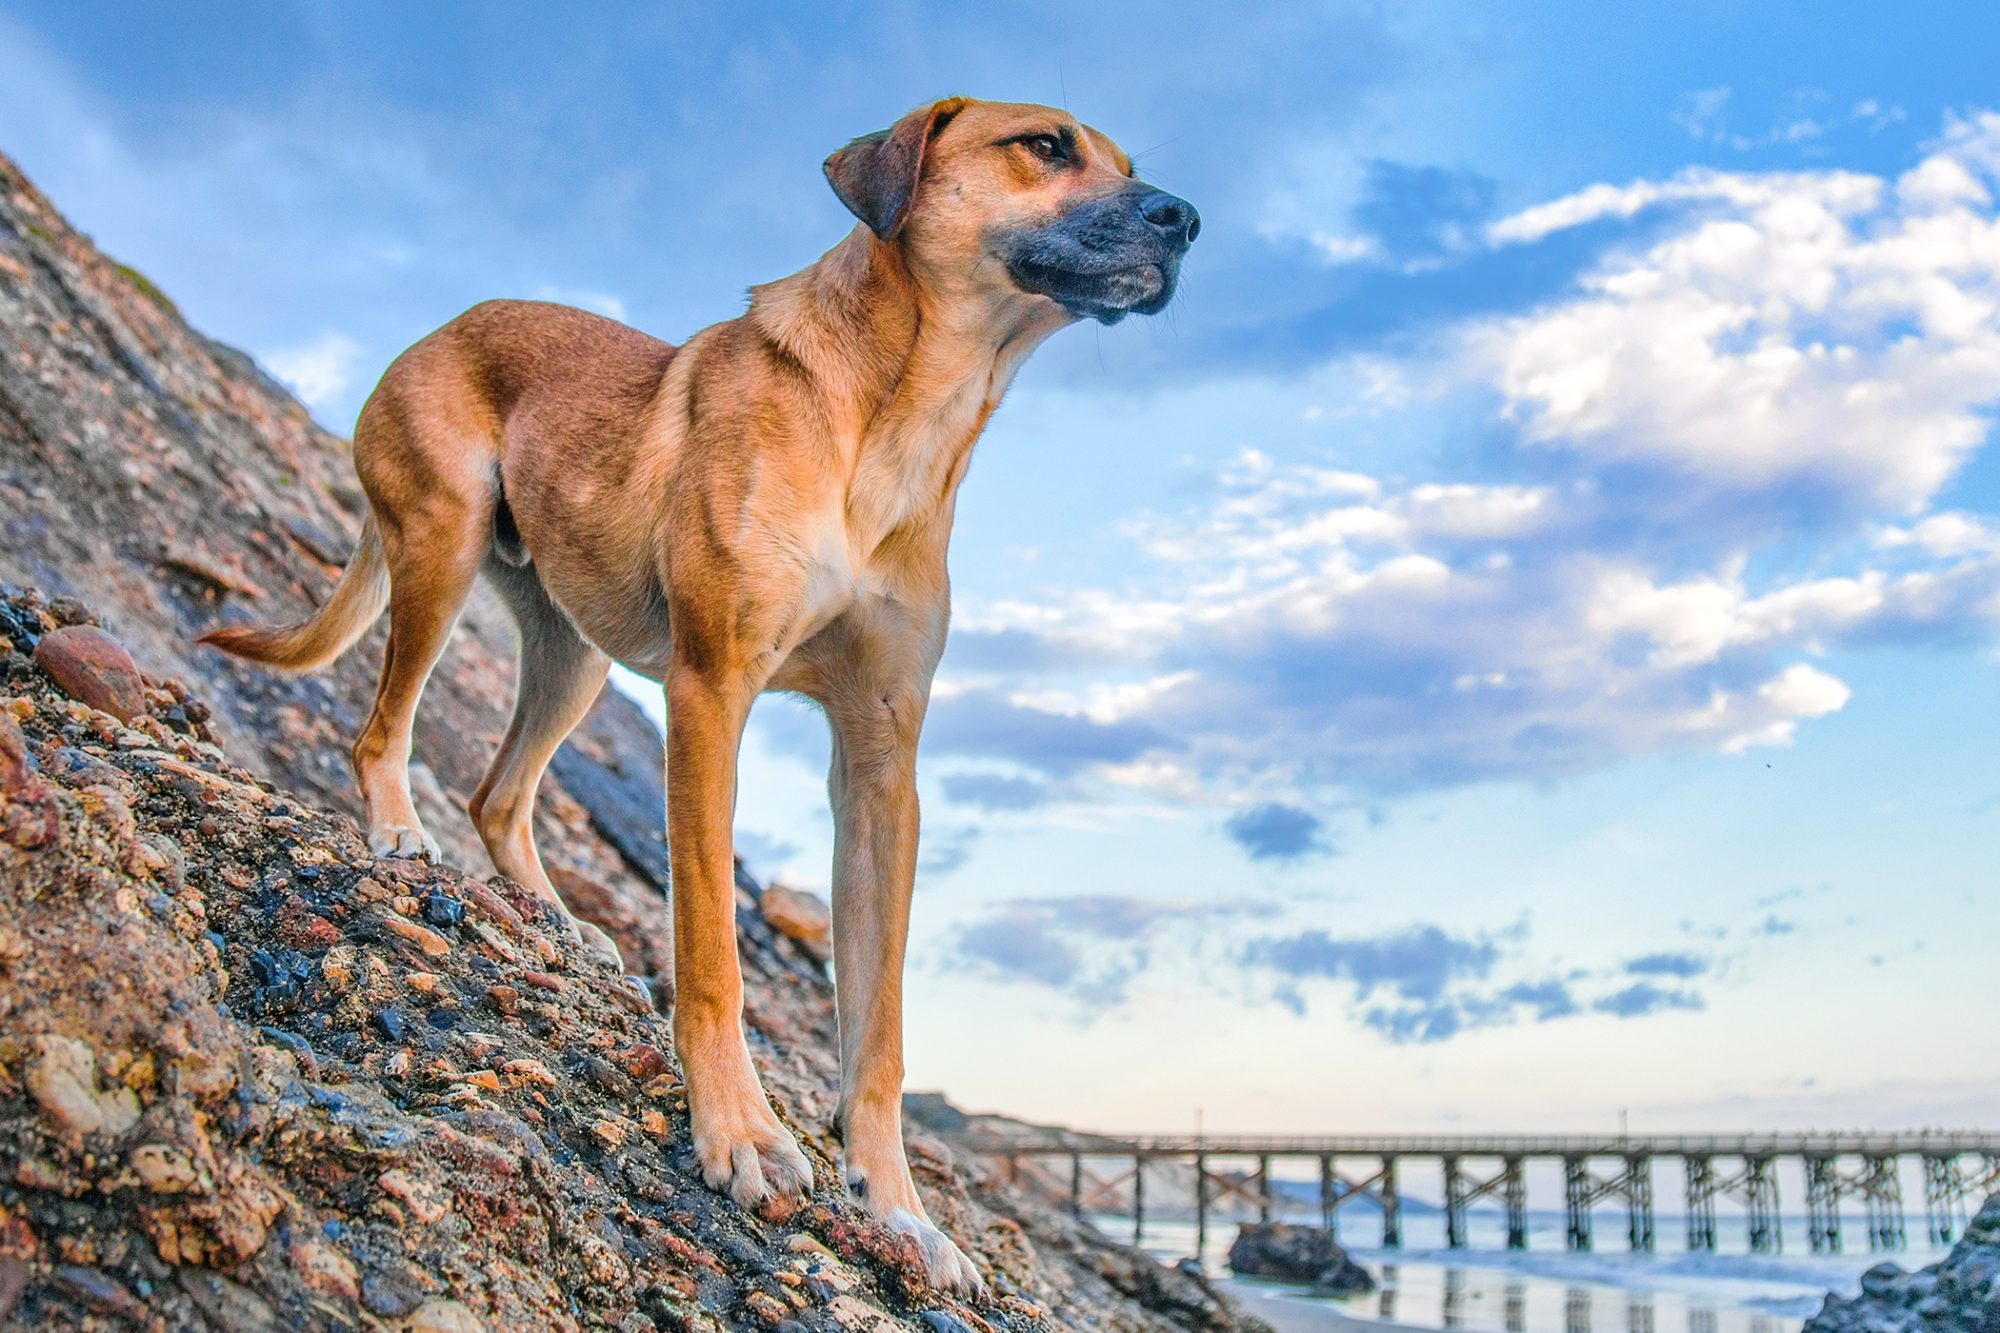 black mouth cur standing on rocks near ocean shore